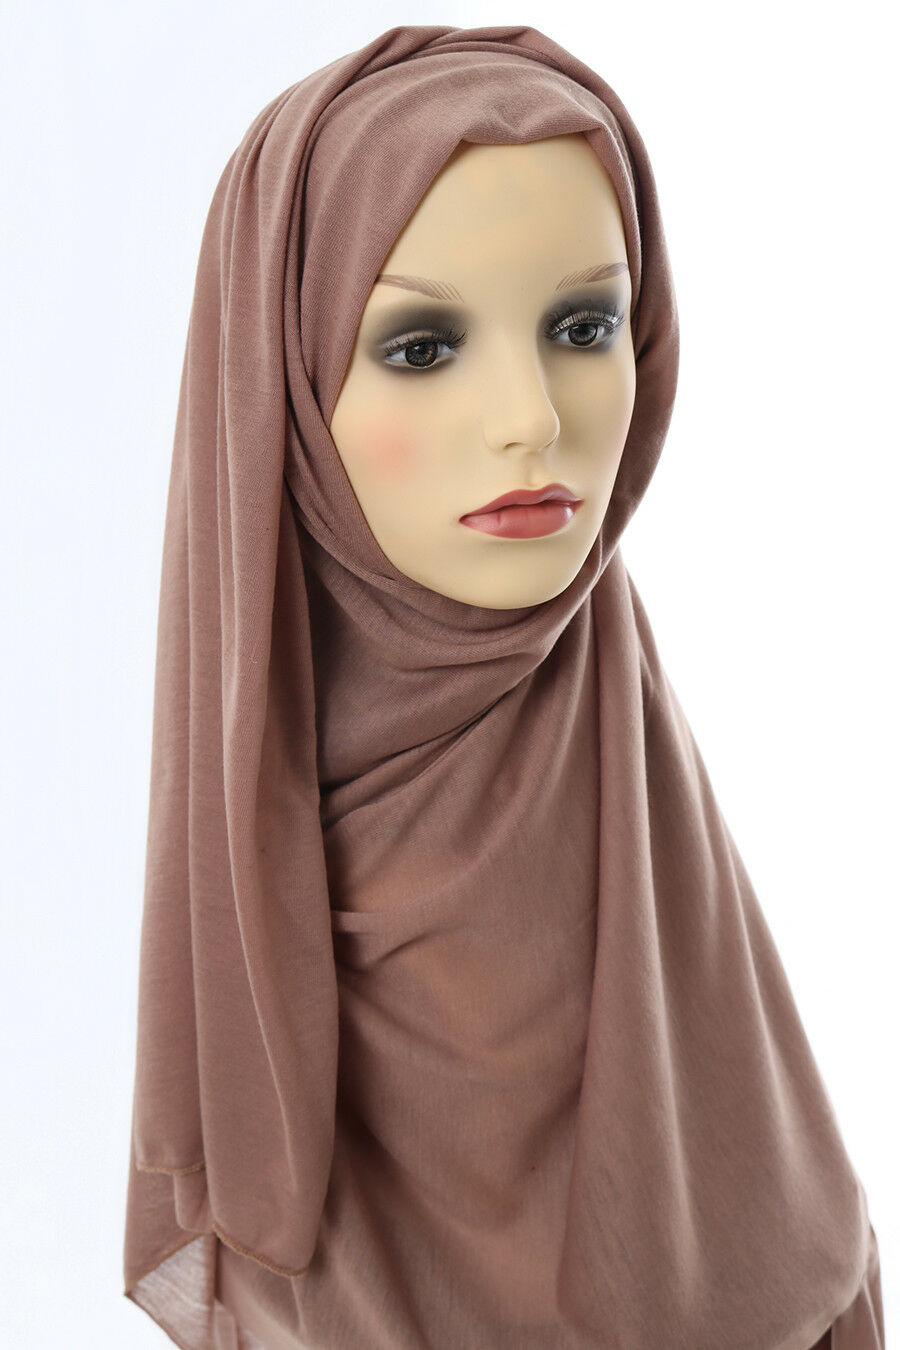 3e2af3165 Details about Head Scarf Hijab Large Headscarf Maxi Jersey Plain Muslim  Islam Head Cover Brown